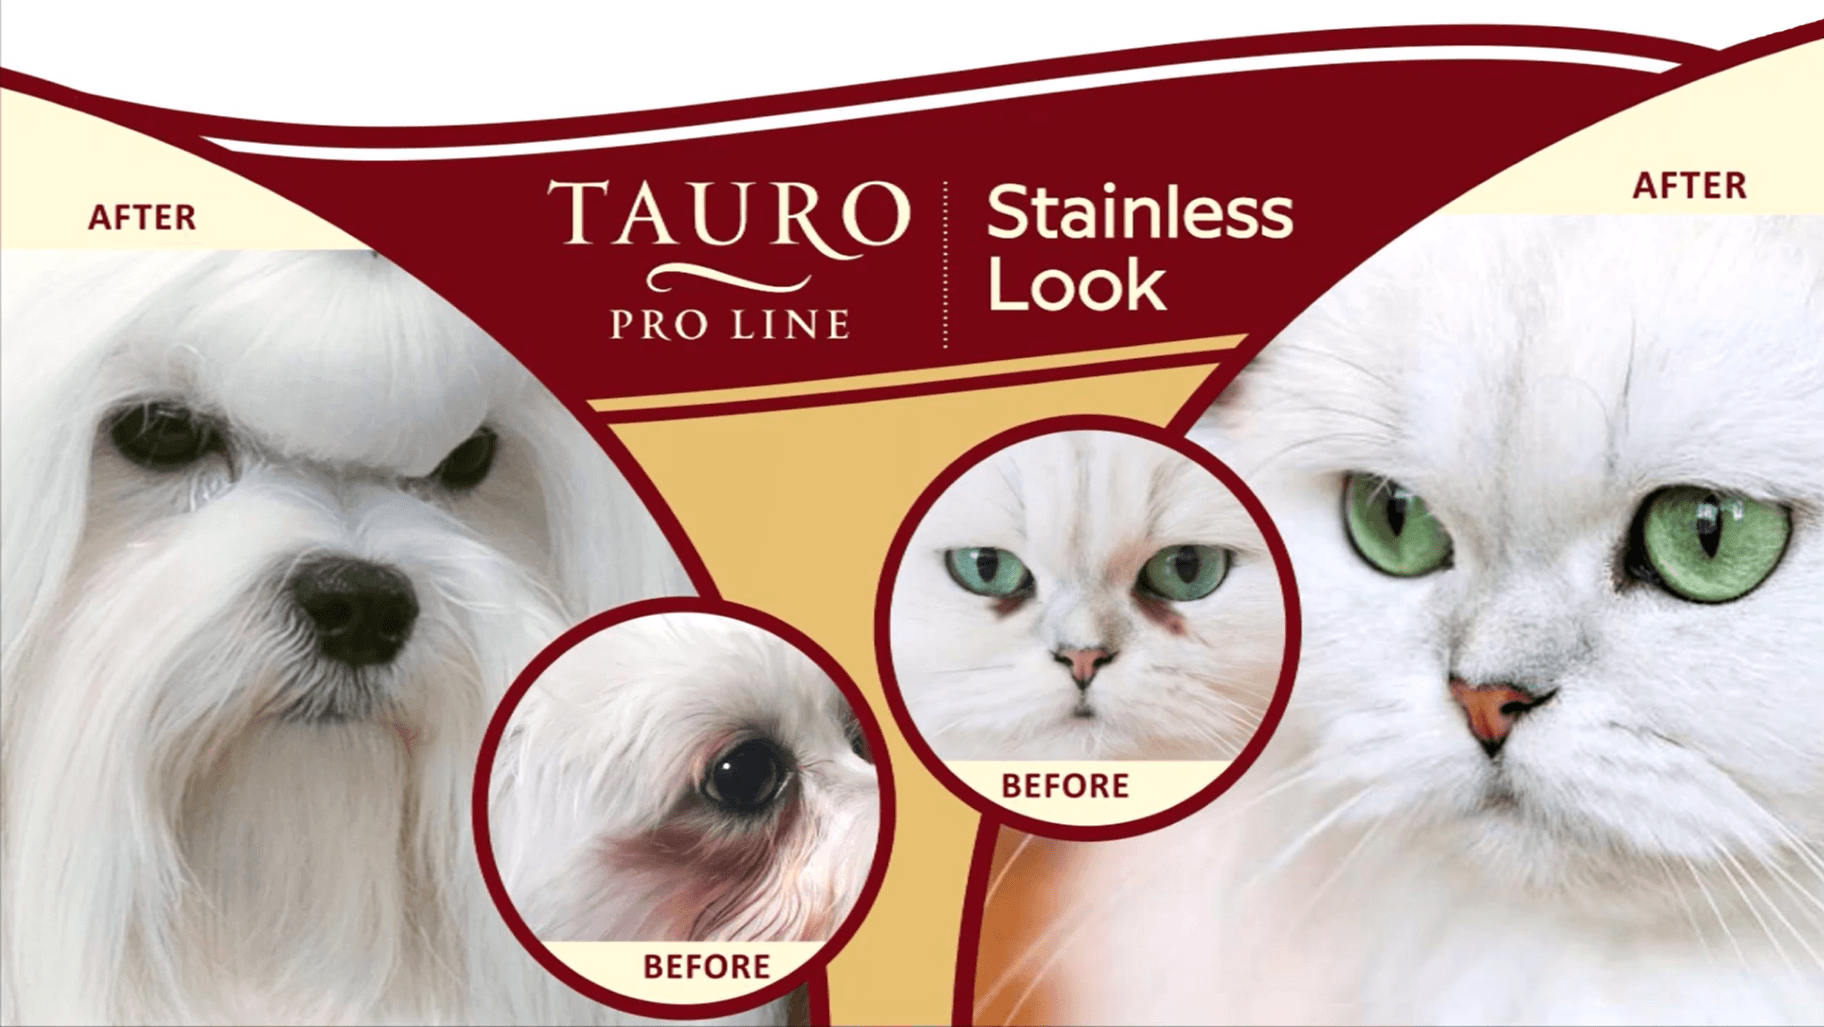 Tauro-Pro-Line-Stainless-Look_before_after